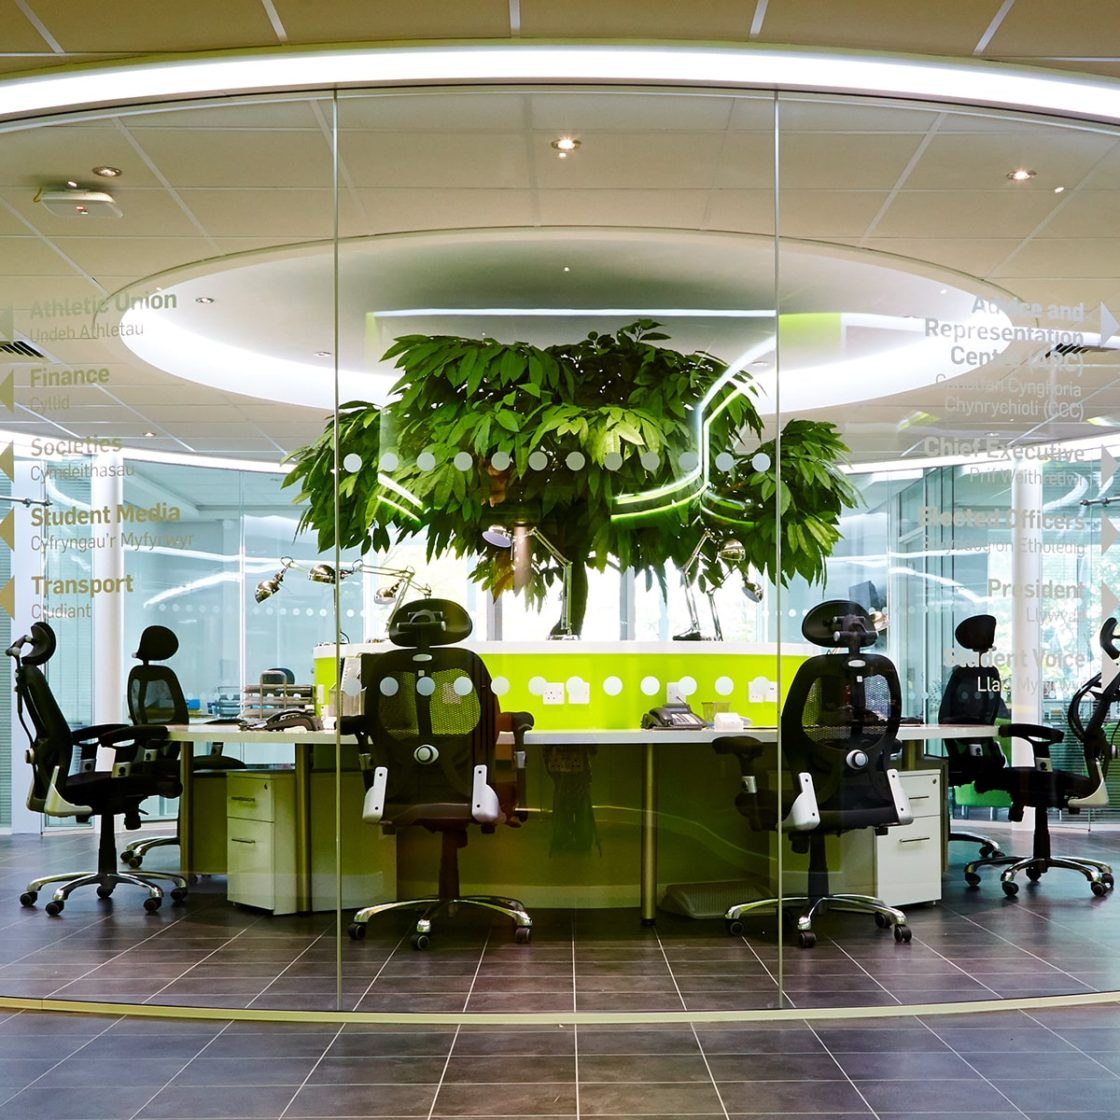 Glass   Curved glass   Partitioning   Office fitout